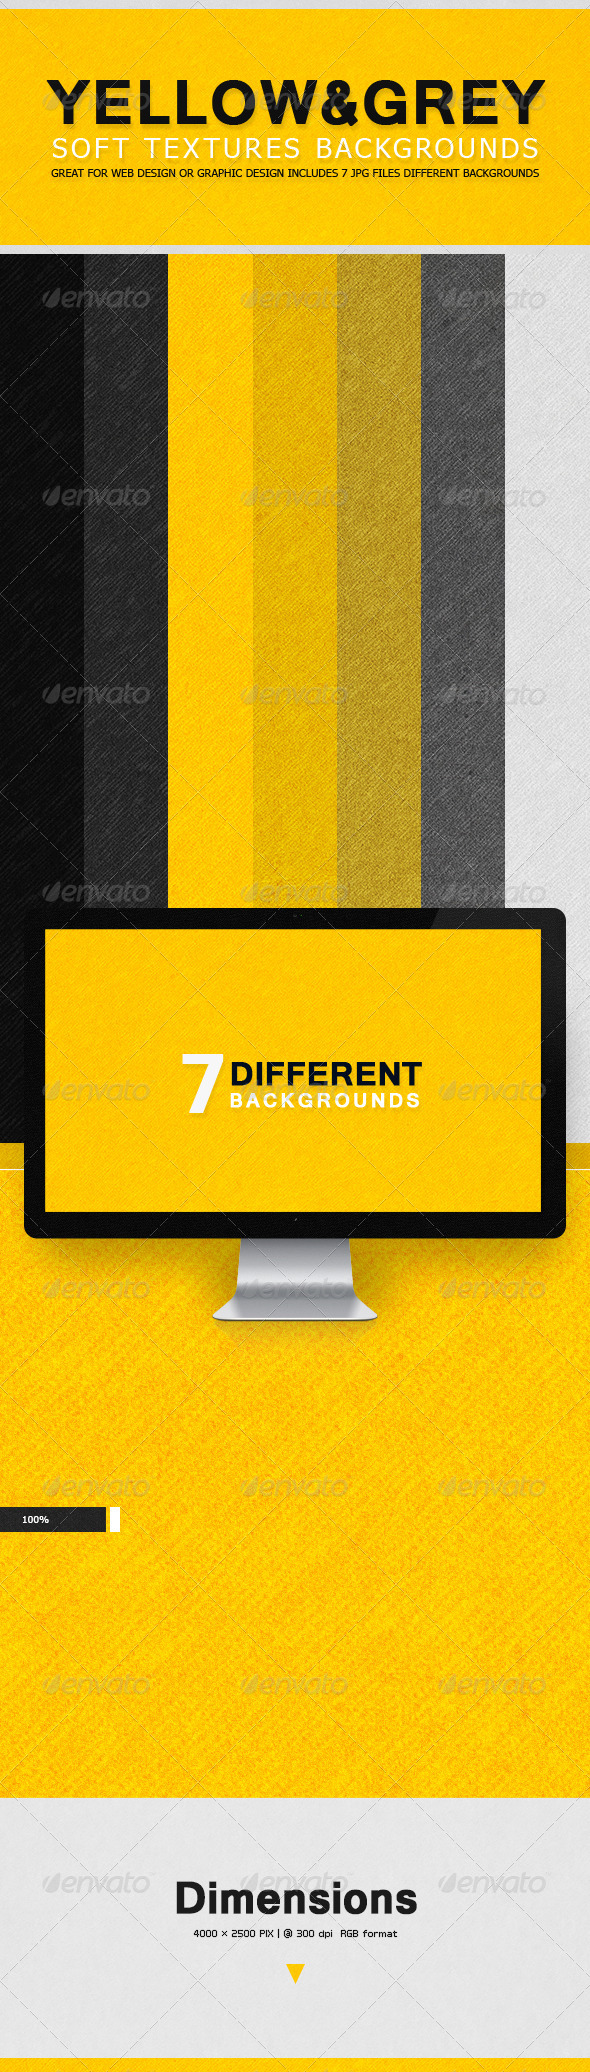 Soft Textures Backgrounds | Yellow & Grey